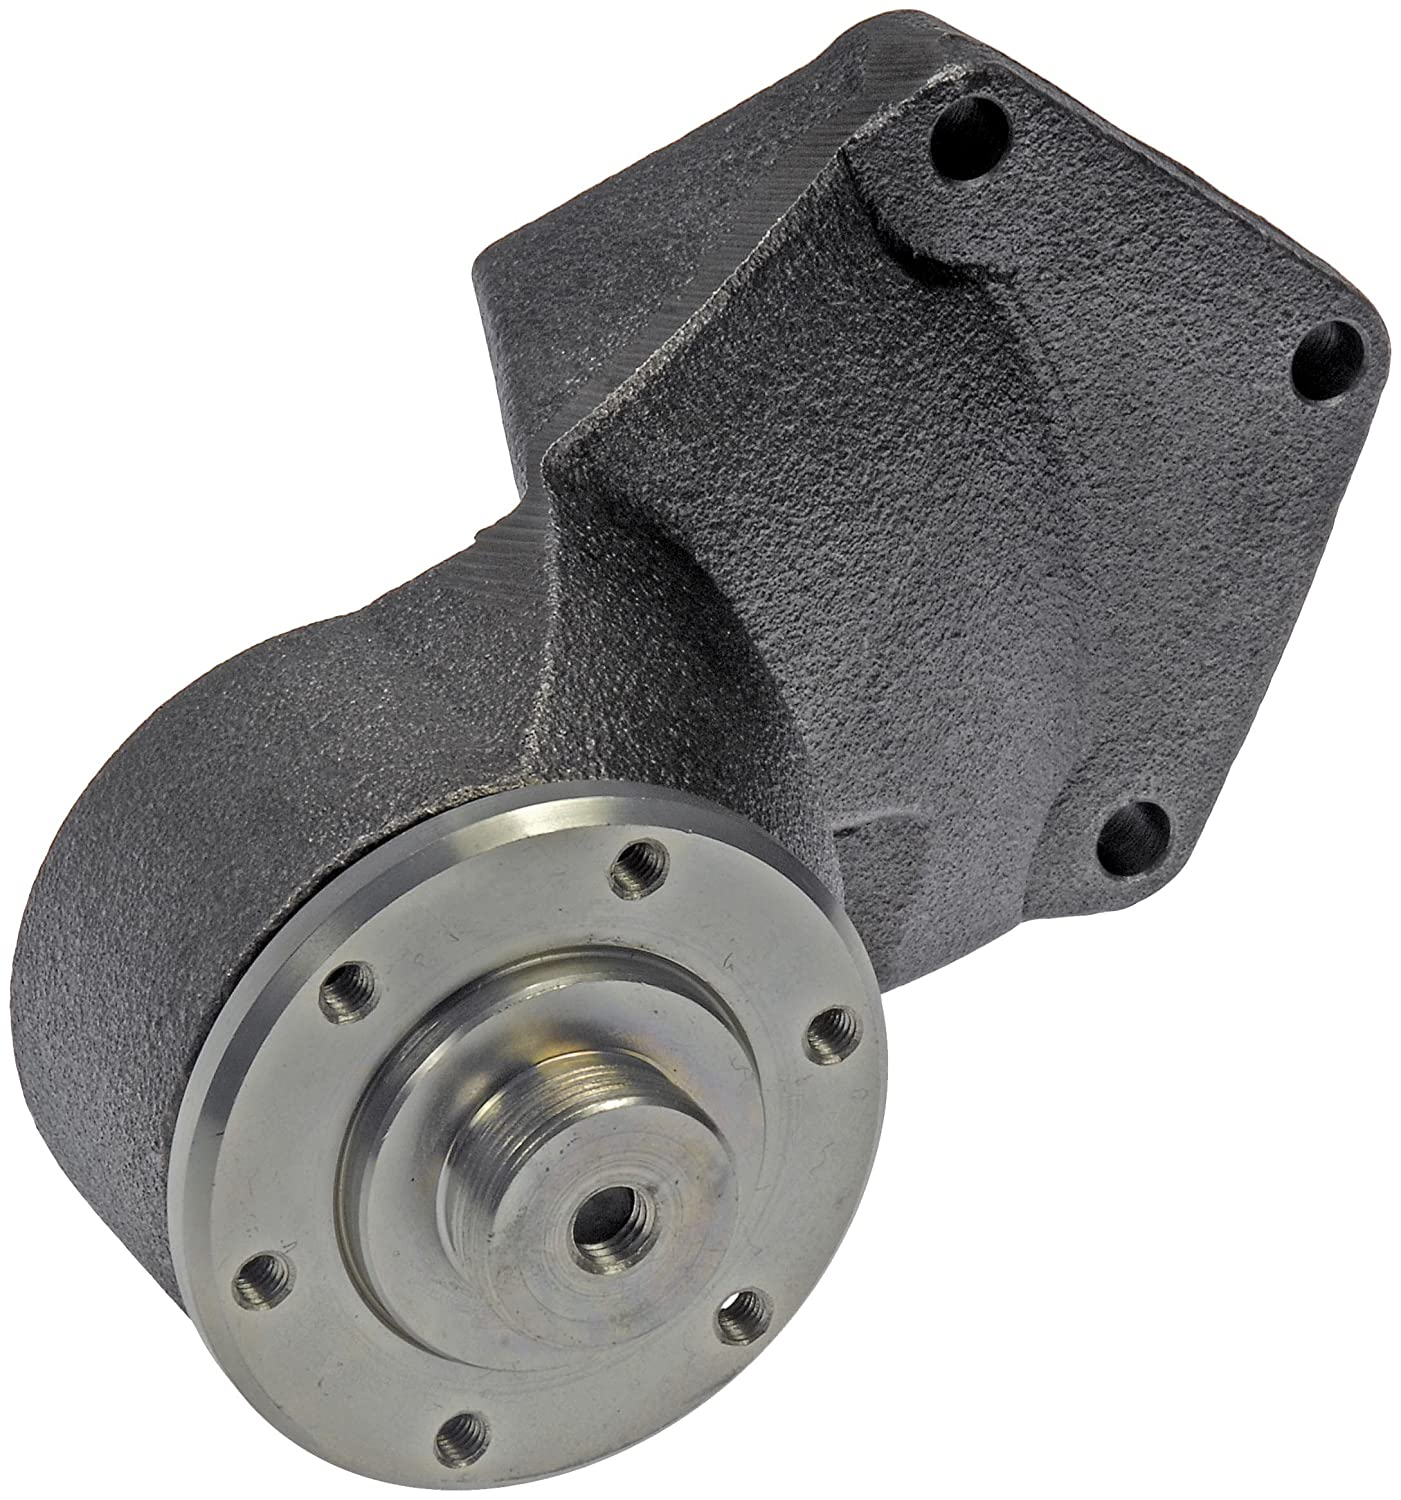 Dorman 300-808 Engine Cooling Fan Pulley Bracket